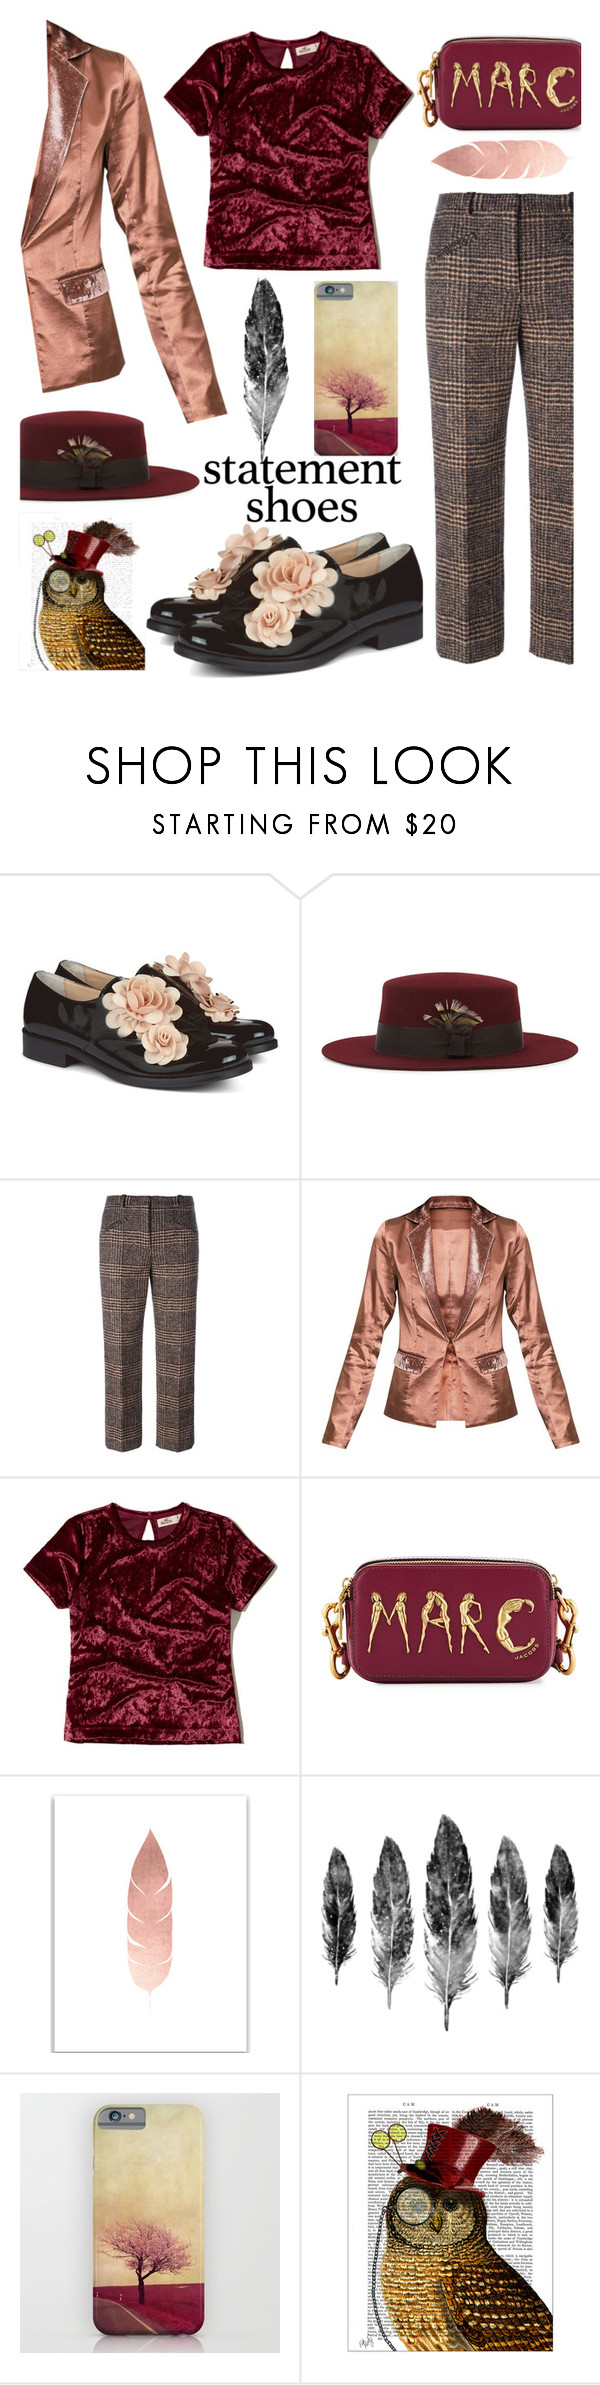 """""""Statement Shoes"""" by bysc ❤ liked on Polyvore featuring Pokemaoke, Christys', Sonia Rykiel, Hollister Co., Marc Jacobs and FabFunky"""